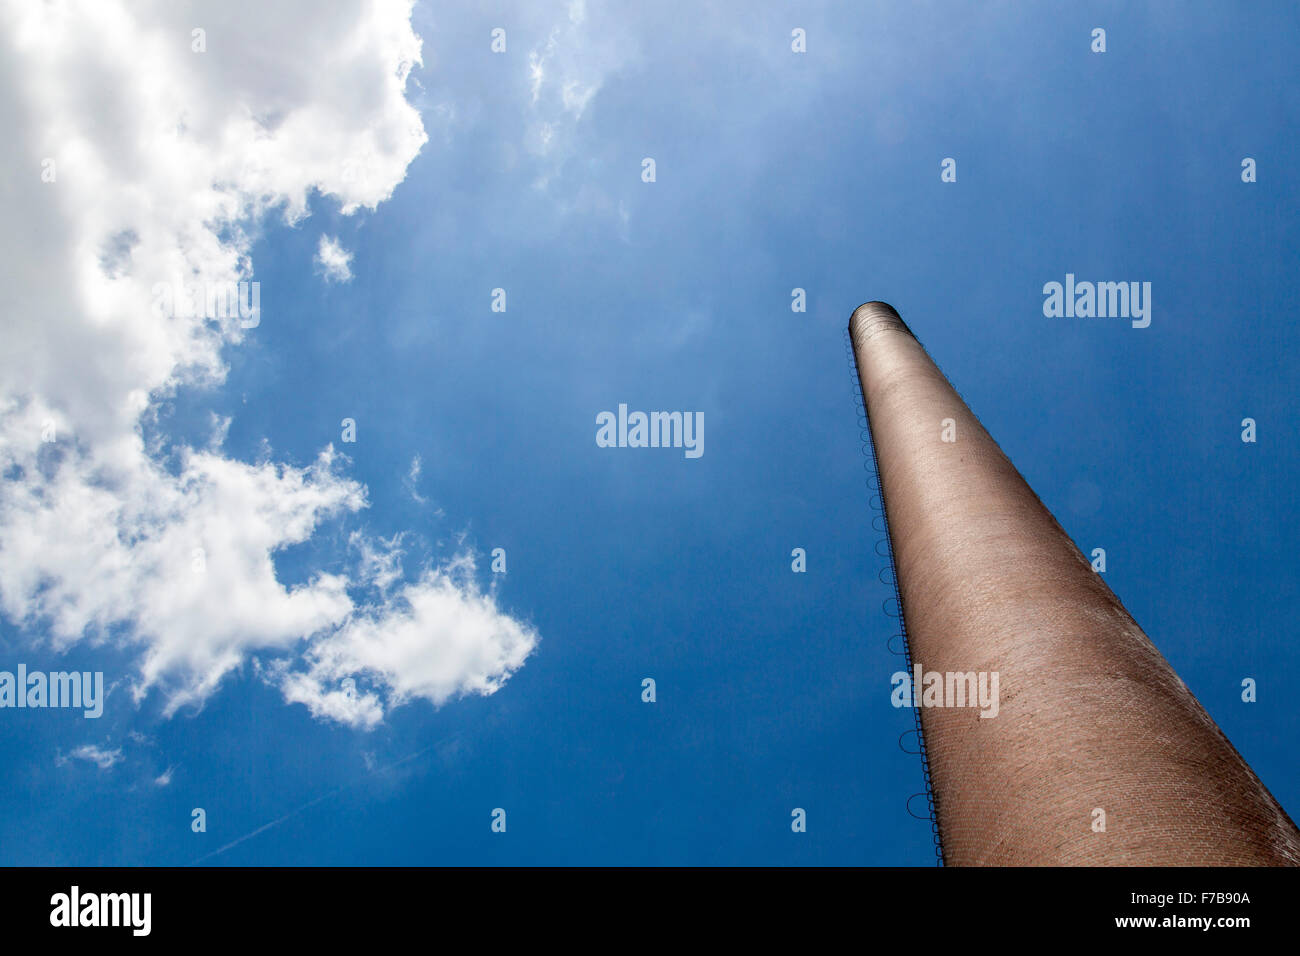 Industrial chimney, made of red bricks, blue sky, white cloud, - Stock Image